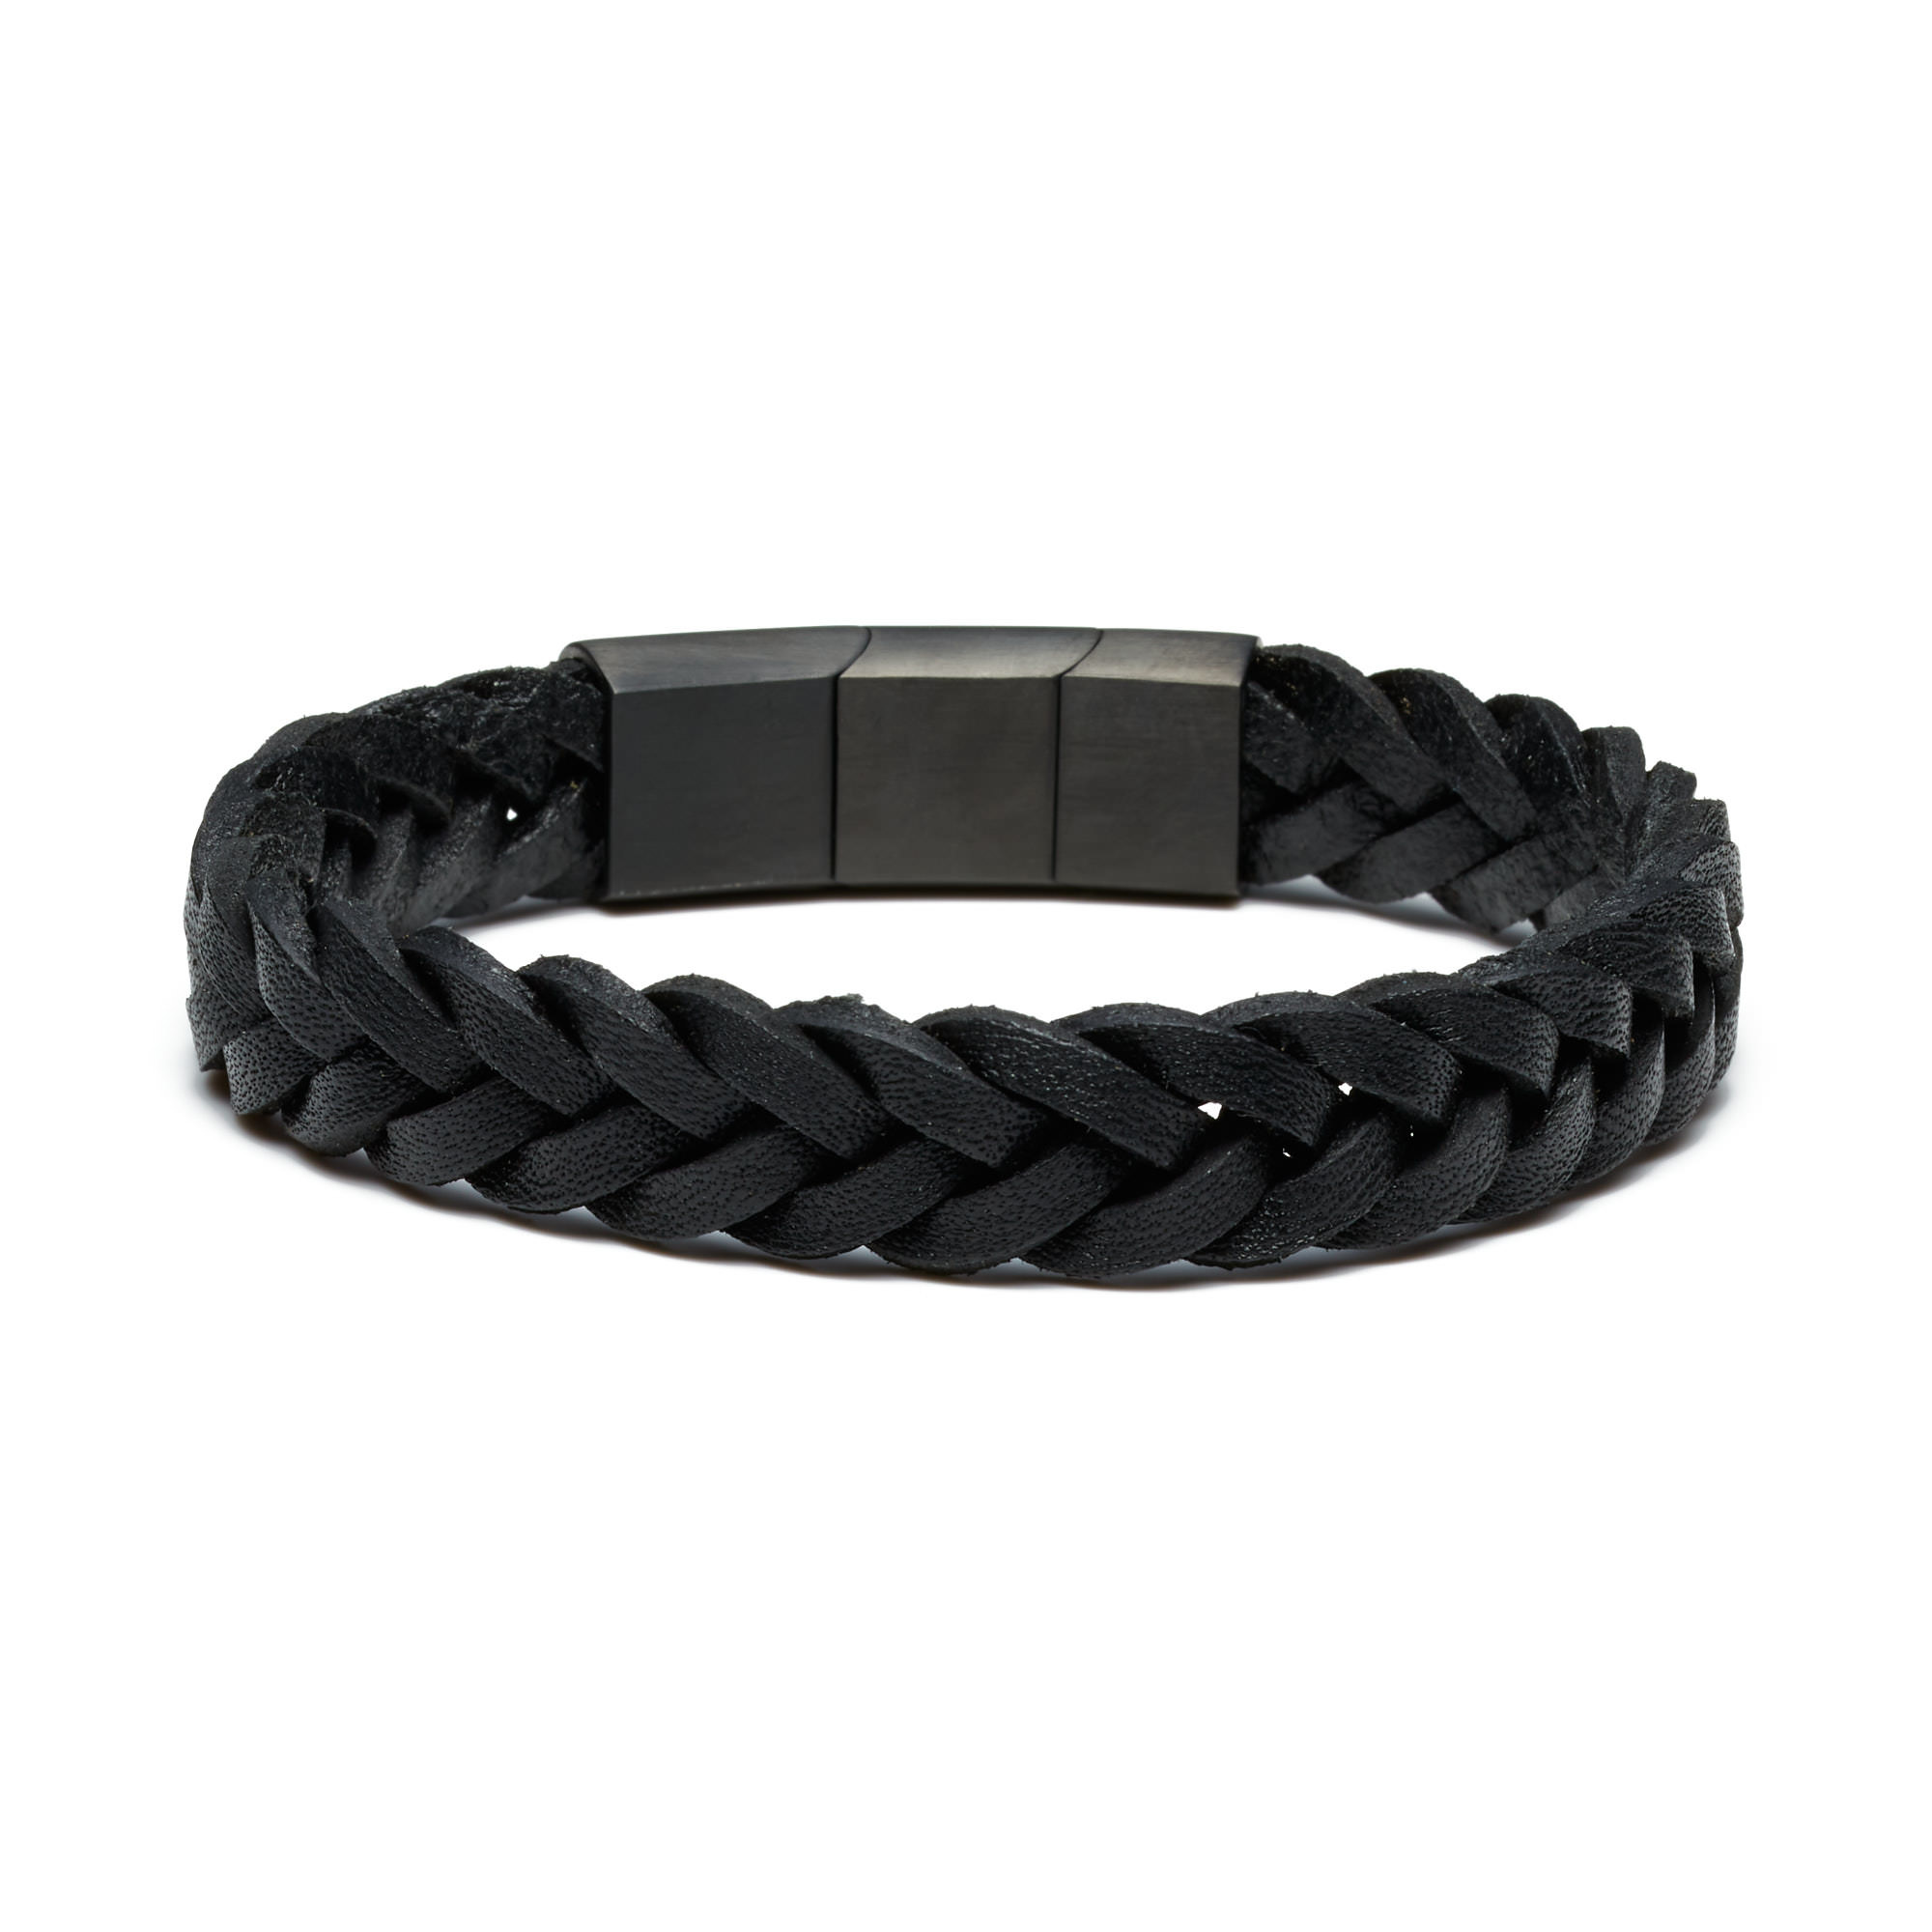 Sem Lewis Bakerloo Paddington leather bracelet black